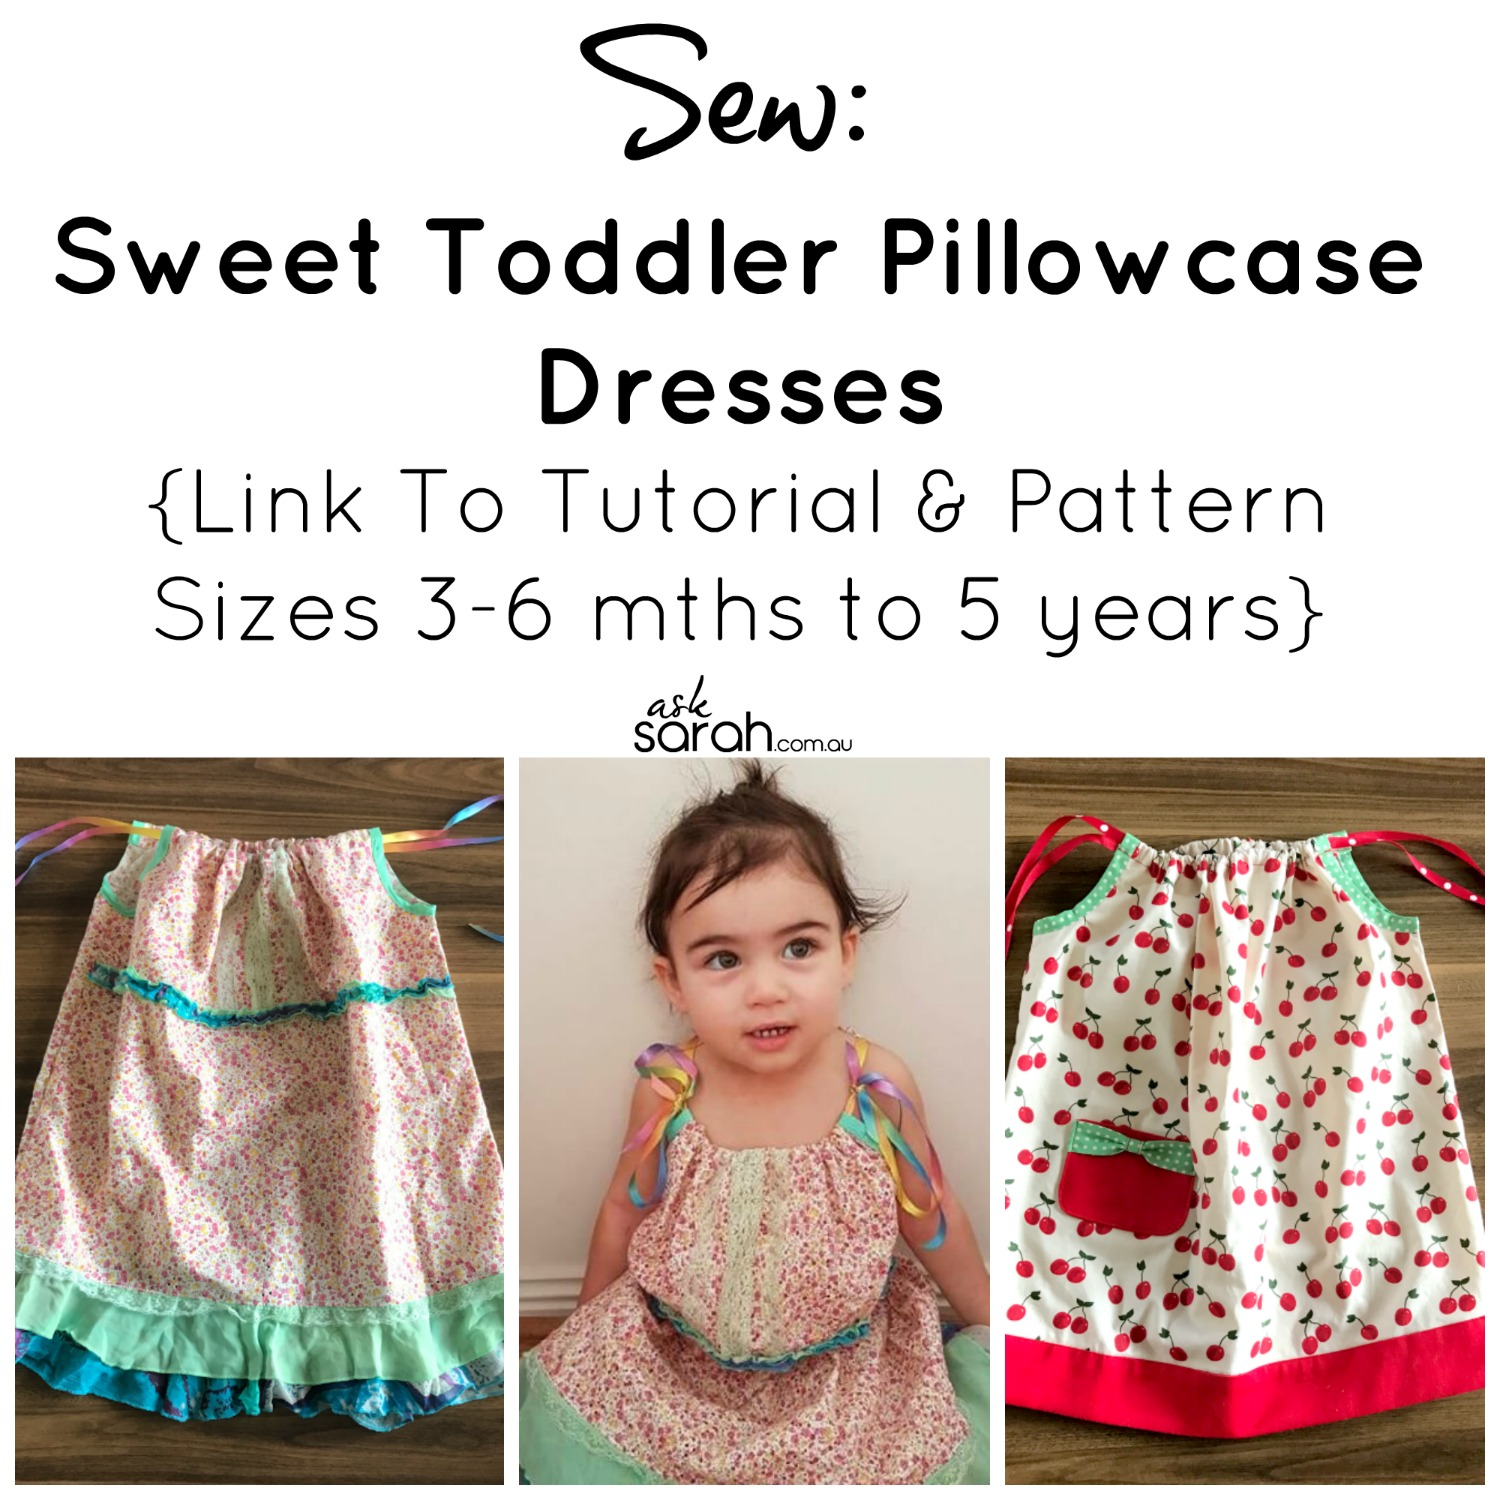 Sew Sweet Toddler Pillowcase Dresses {Link To Tutorial & Pattern Sizes 3-6 mths to 5 years}